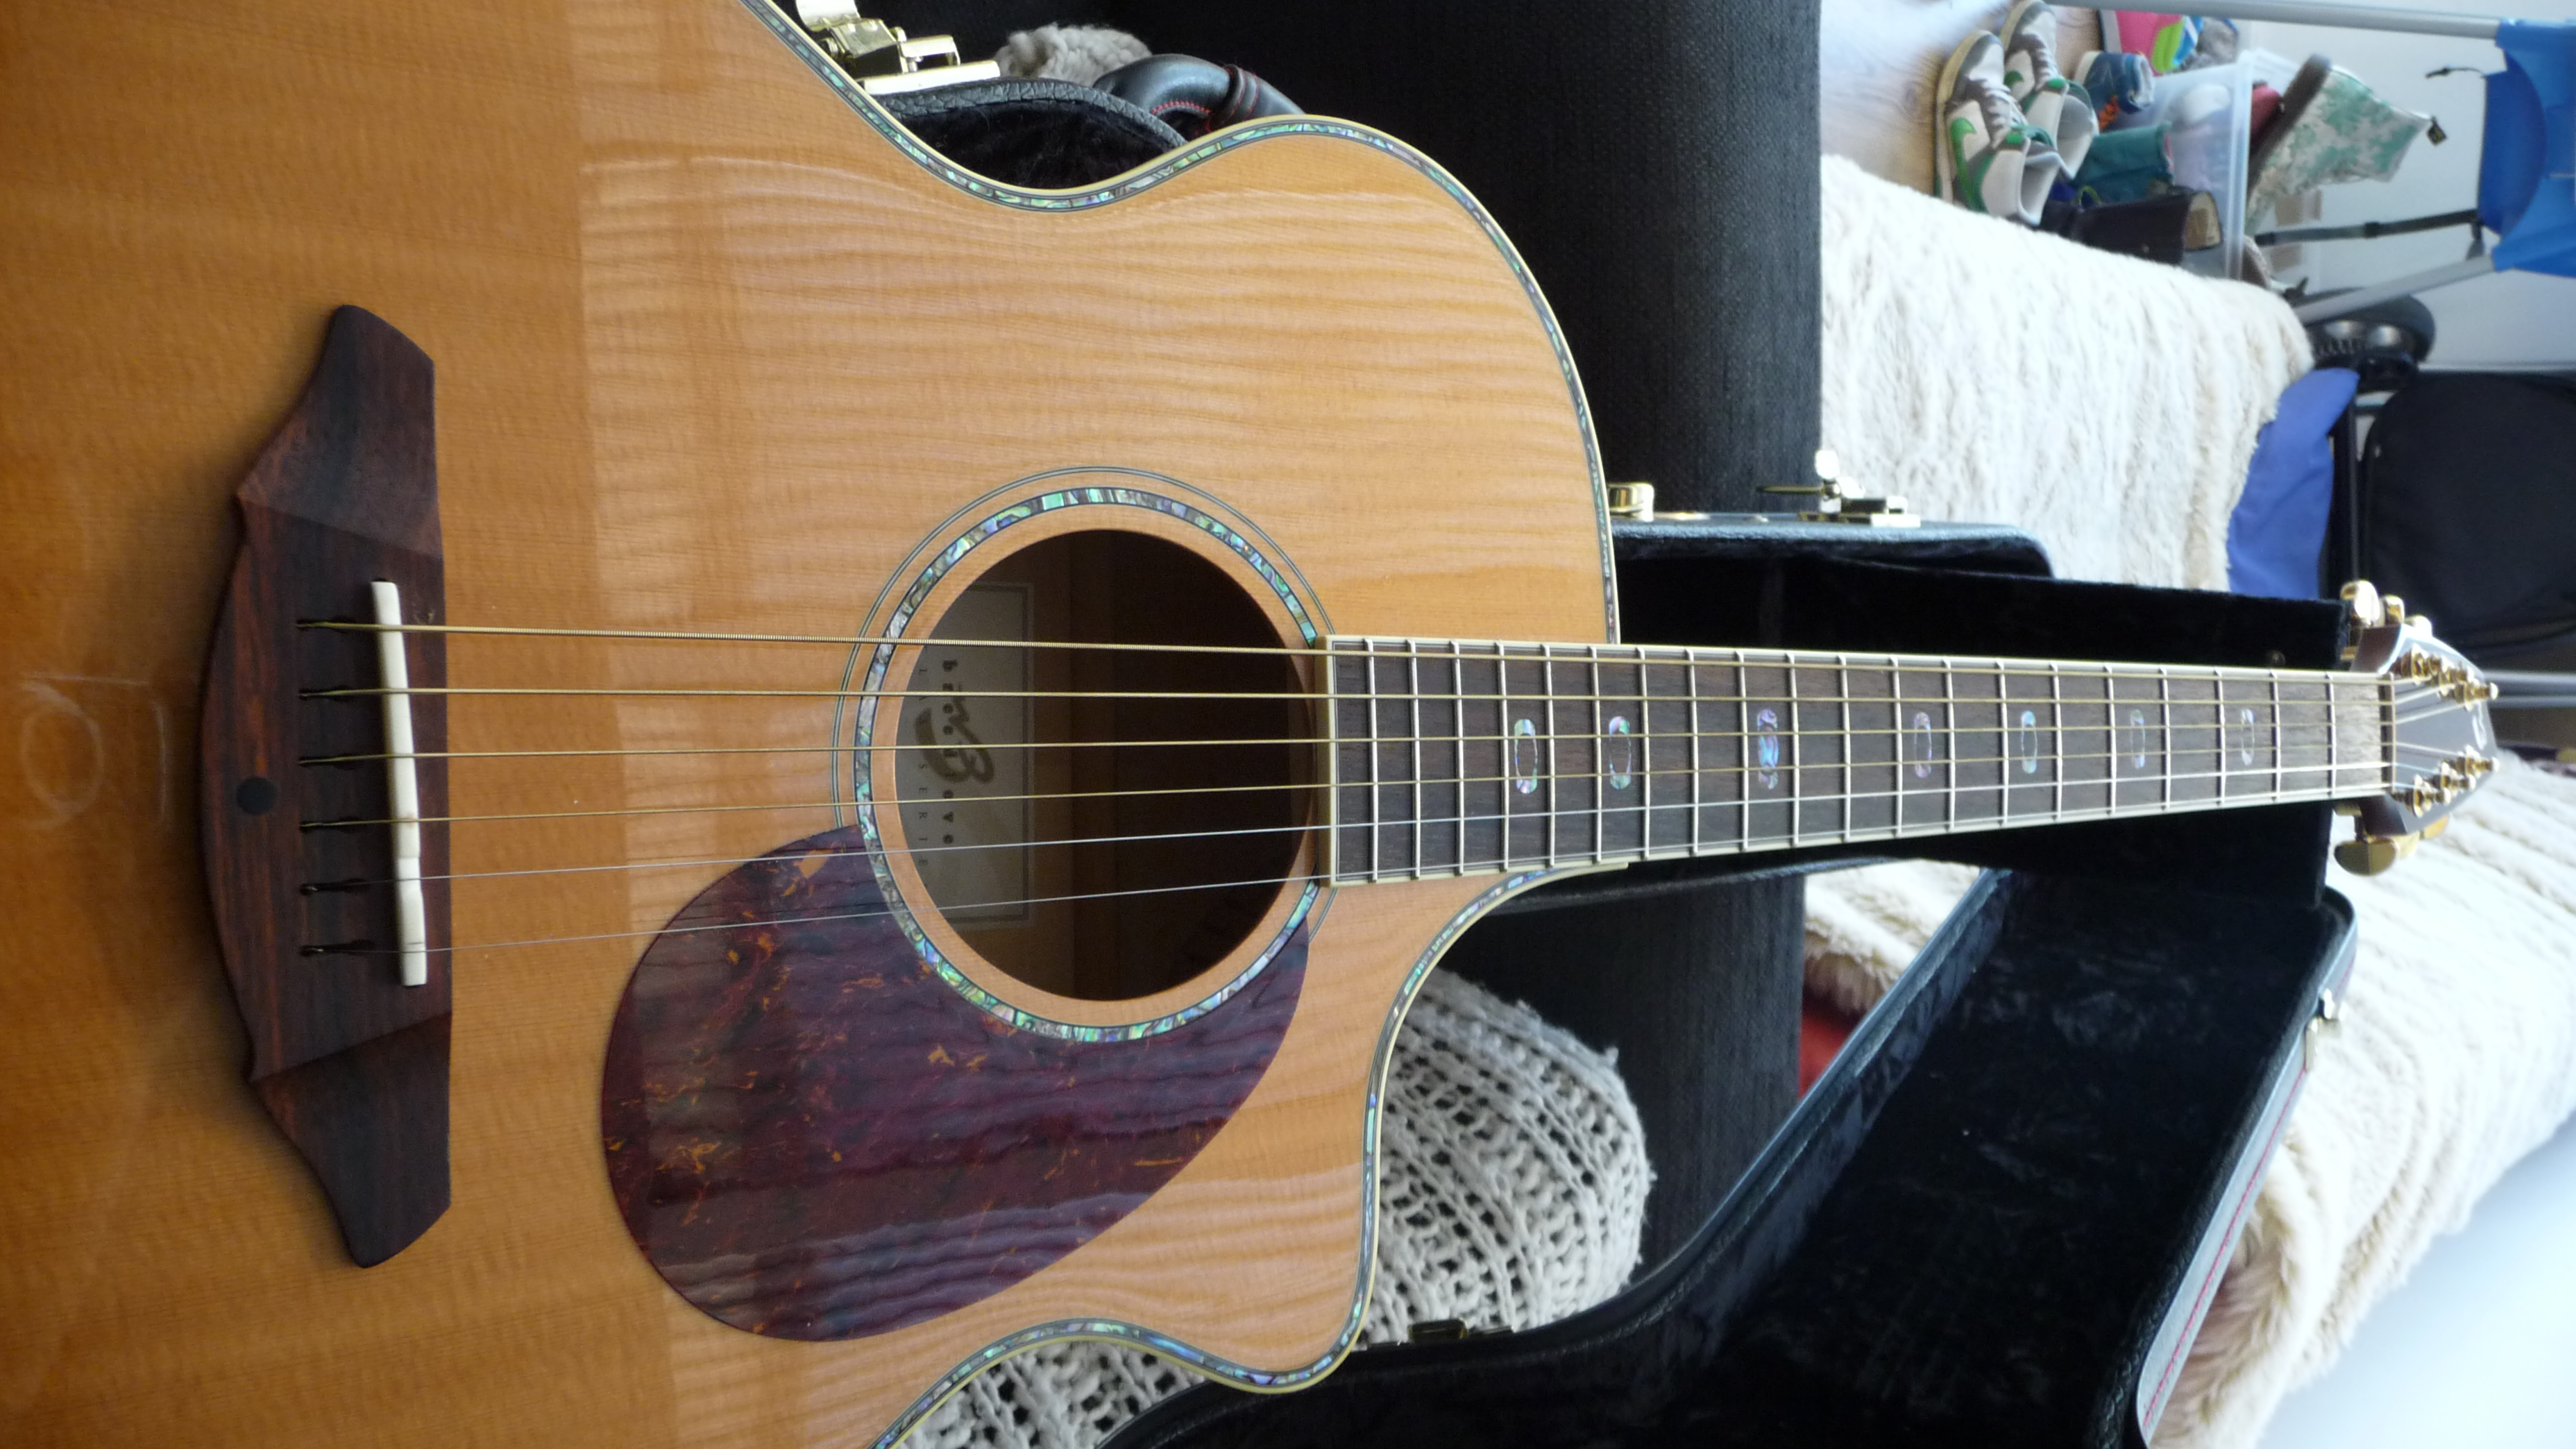 My Breedlove